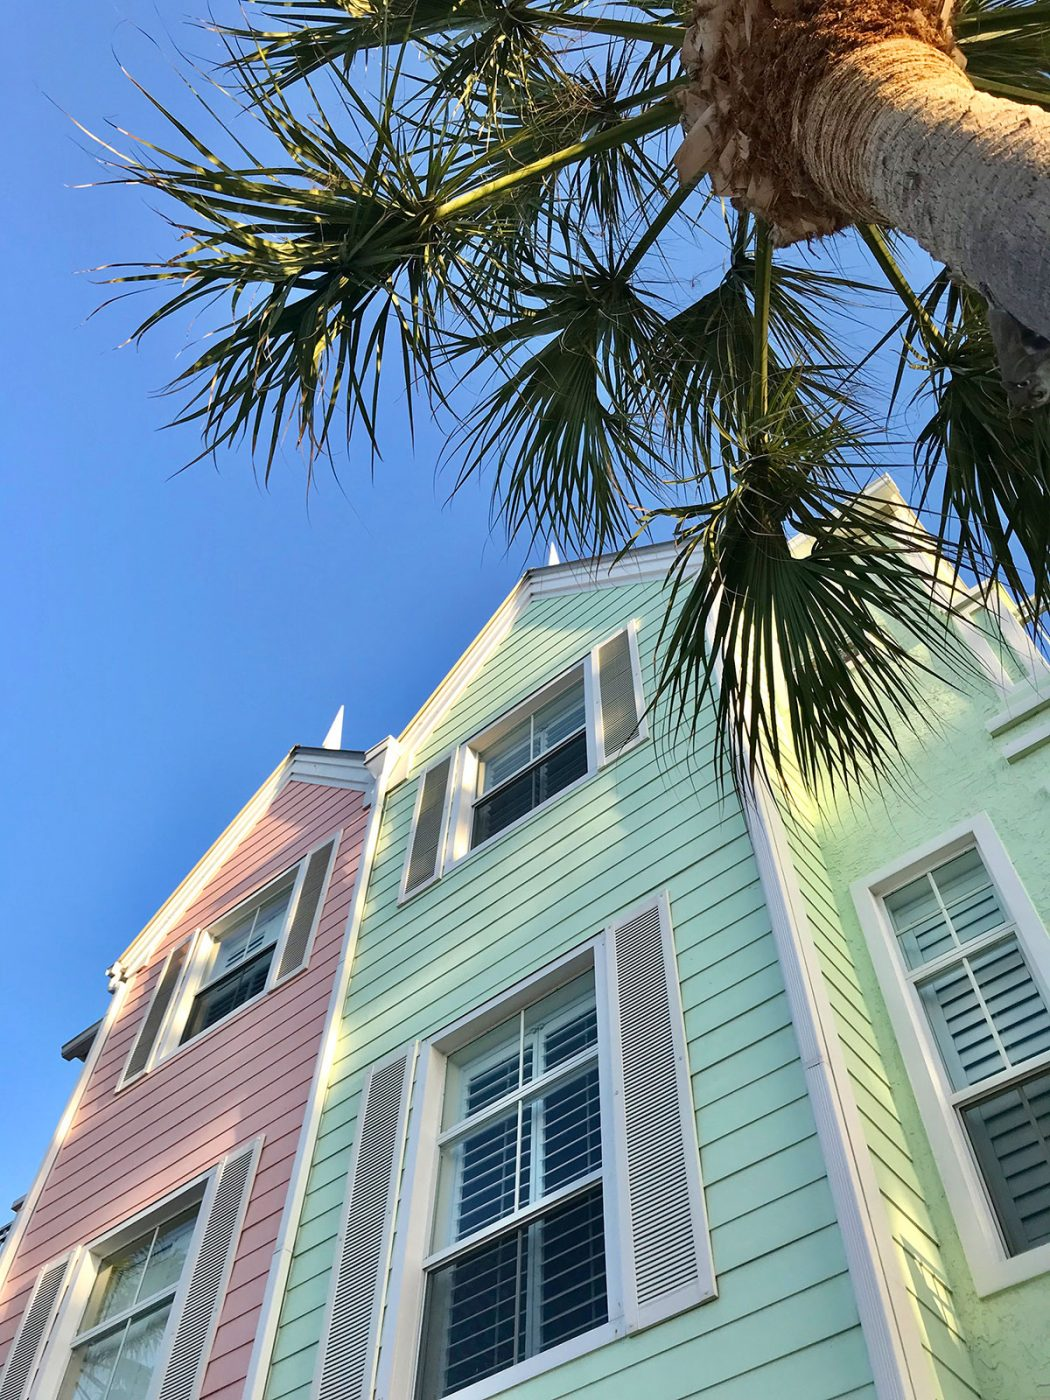 Colorful townhouses in Lighthouse Point Florida